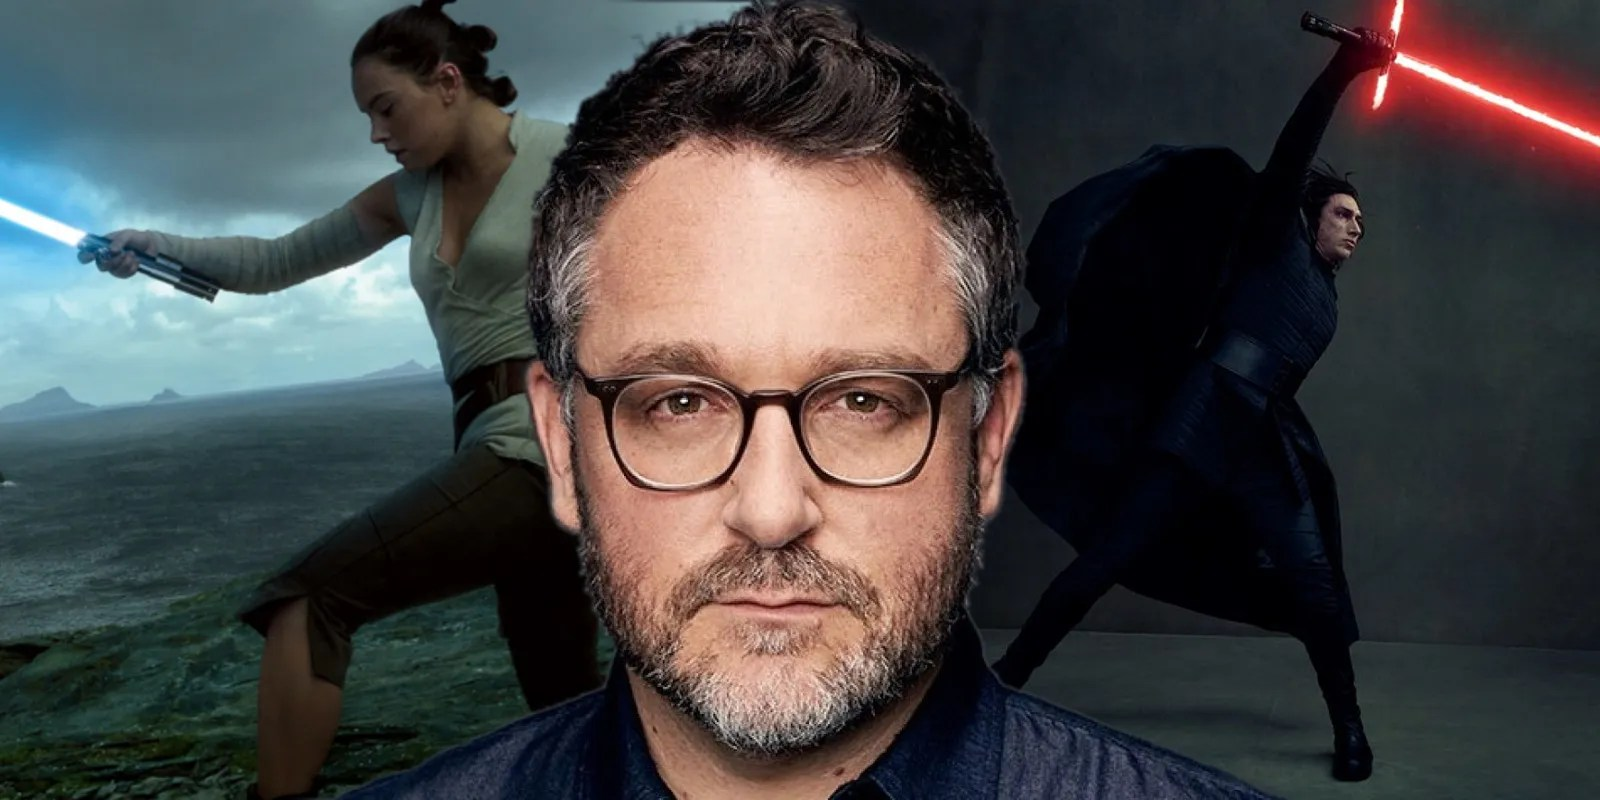 Colin Trevorrow's original Star Wars 9 story has reportedly been revealed